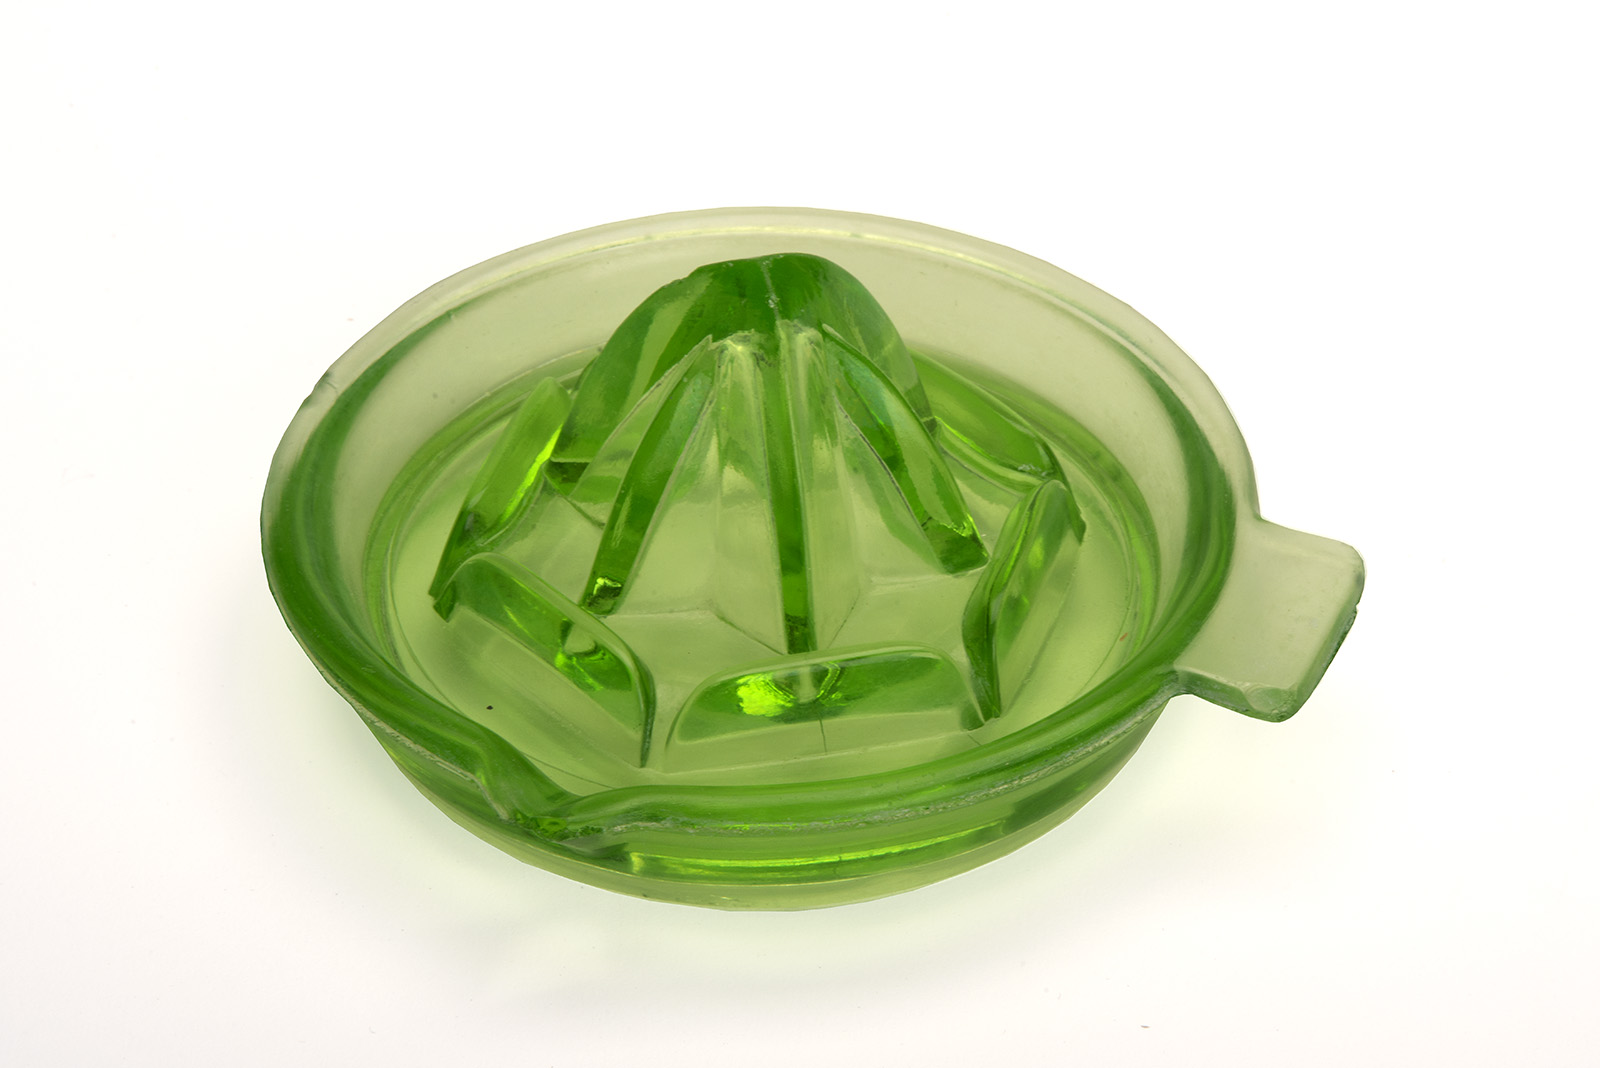 Orange juice squeezer, uranium glass (Vaseline glass)